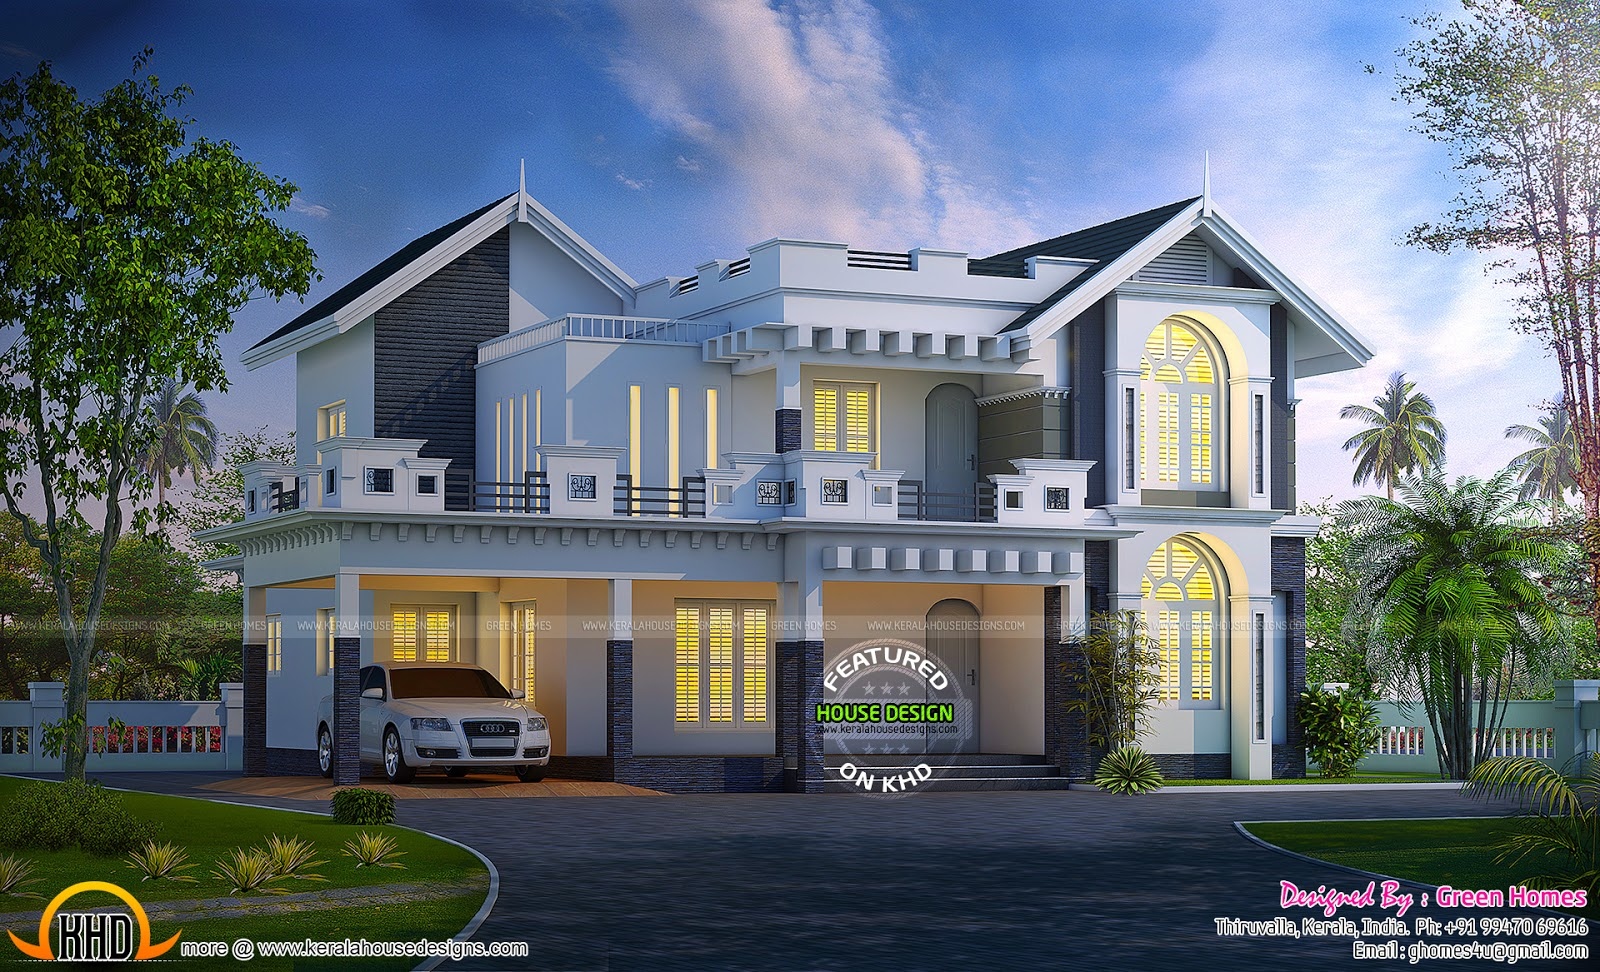 New kerala house plans for june 2015 keralahousedesigns New model house plan